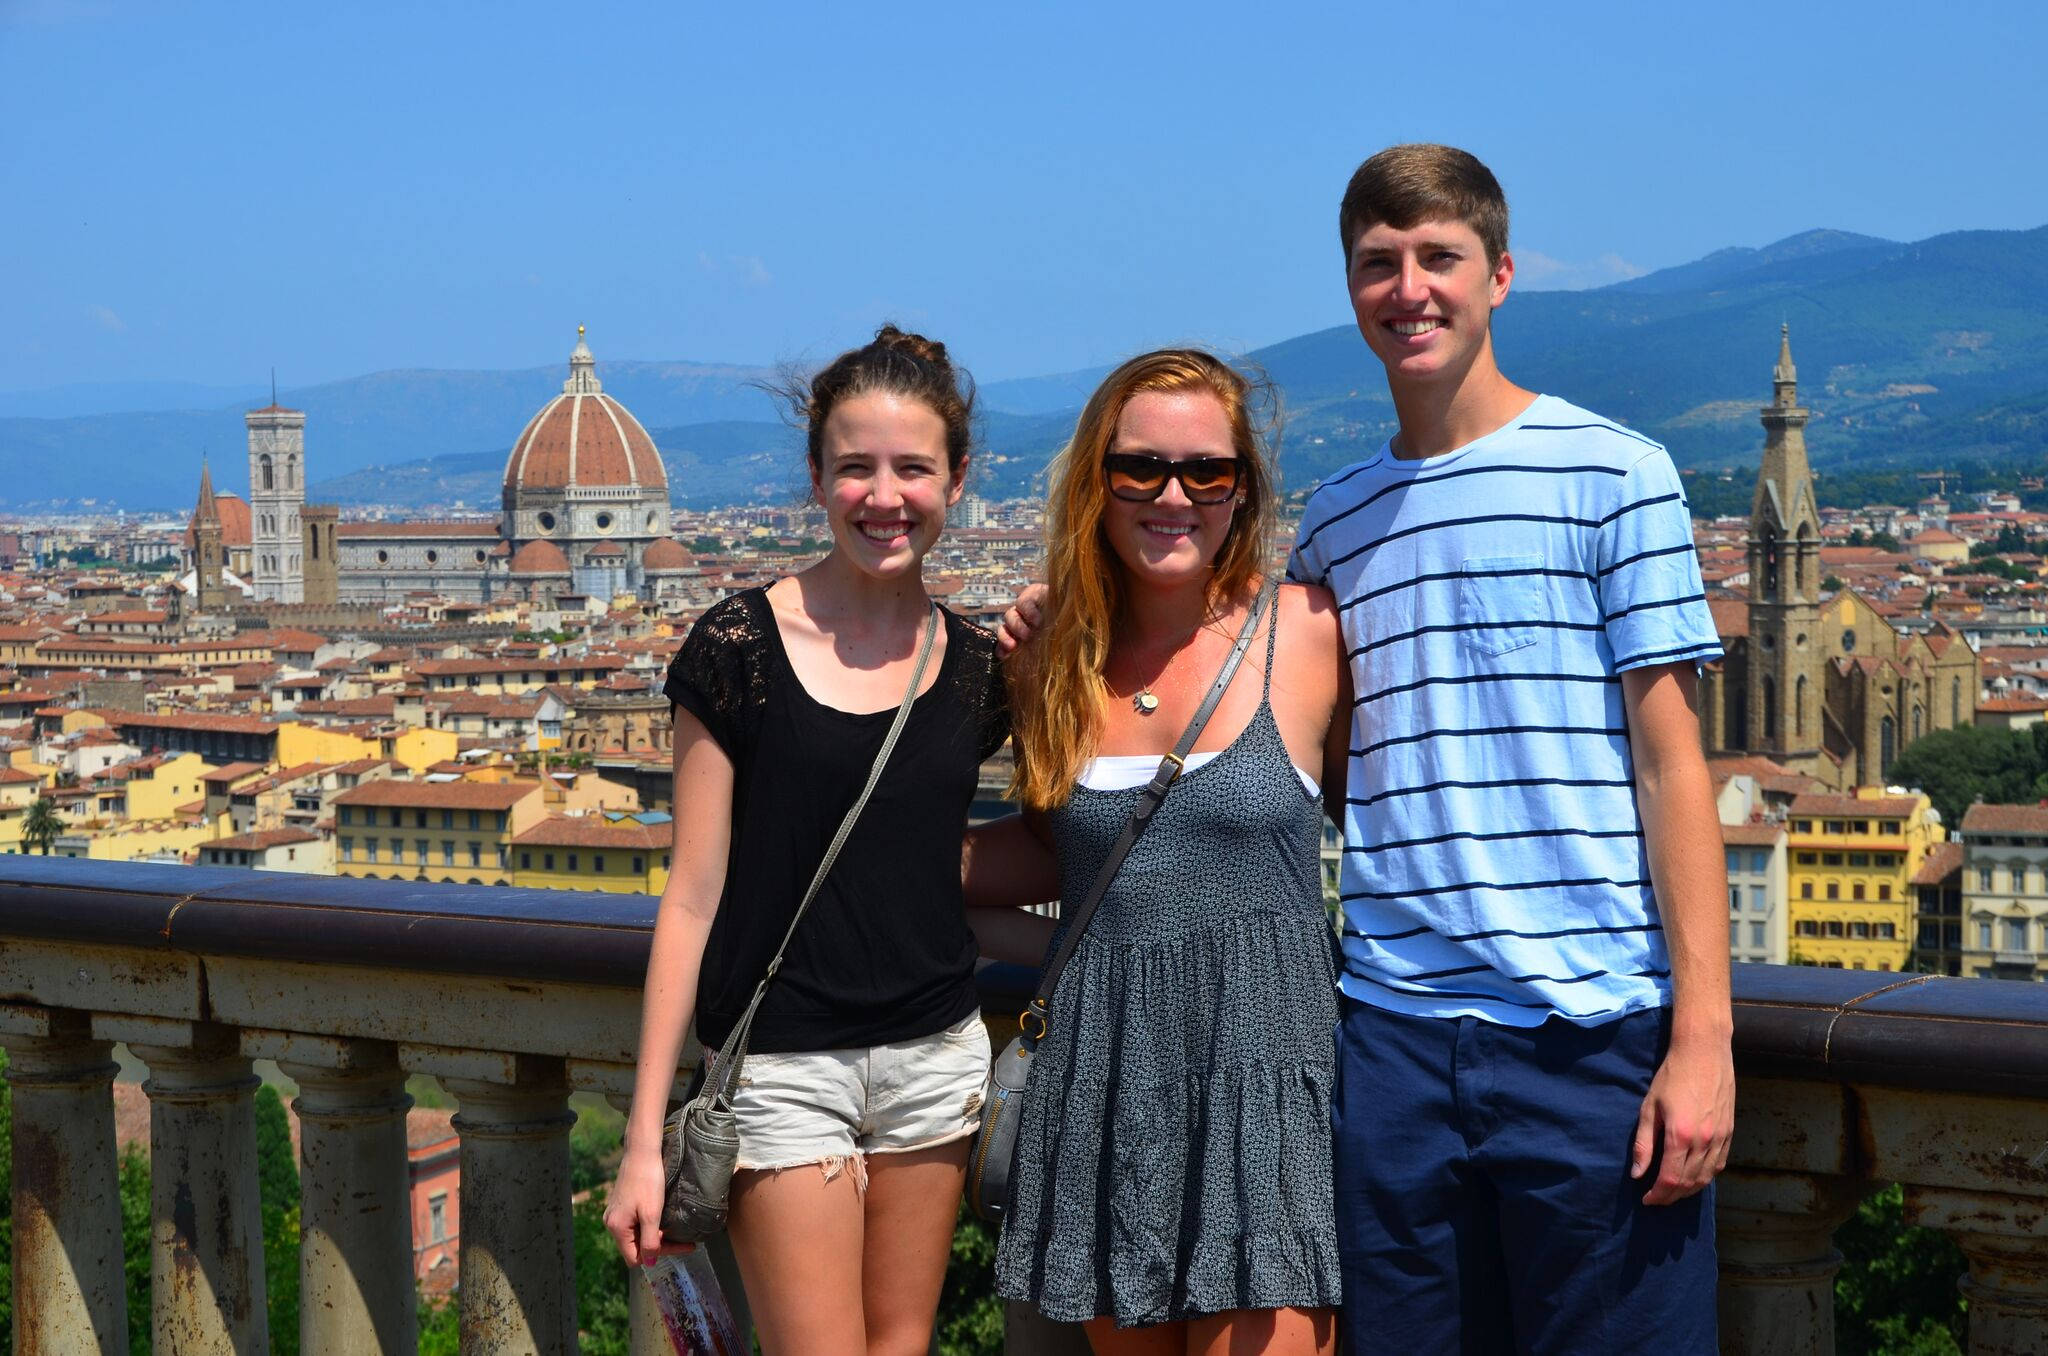 Summer Program - Group Travel | Travel For Teens: Europe for Older Teens - Florence, Cinque Terre, Switzerland and Paris